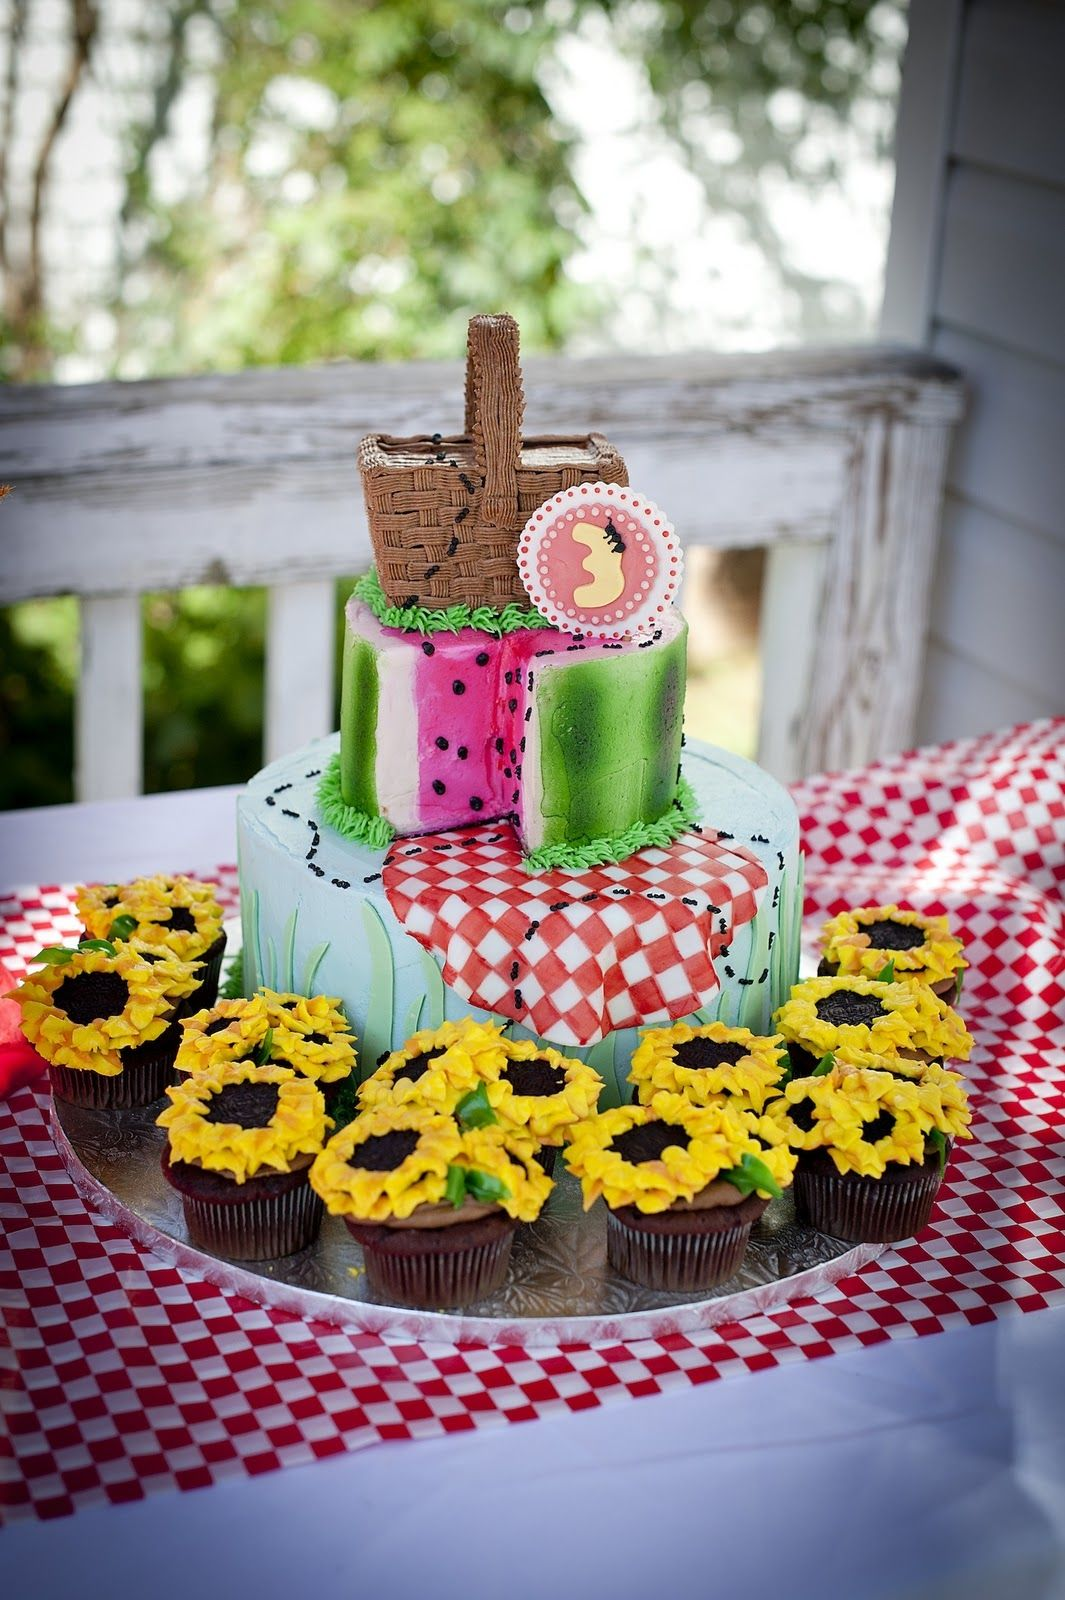 Picnic Themed Decorations Pin By Jara N Jessie Montano On Cakes In 2019 Pinterest